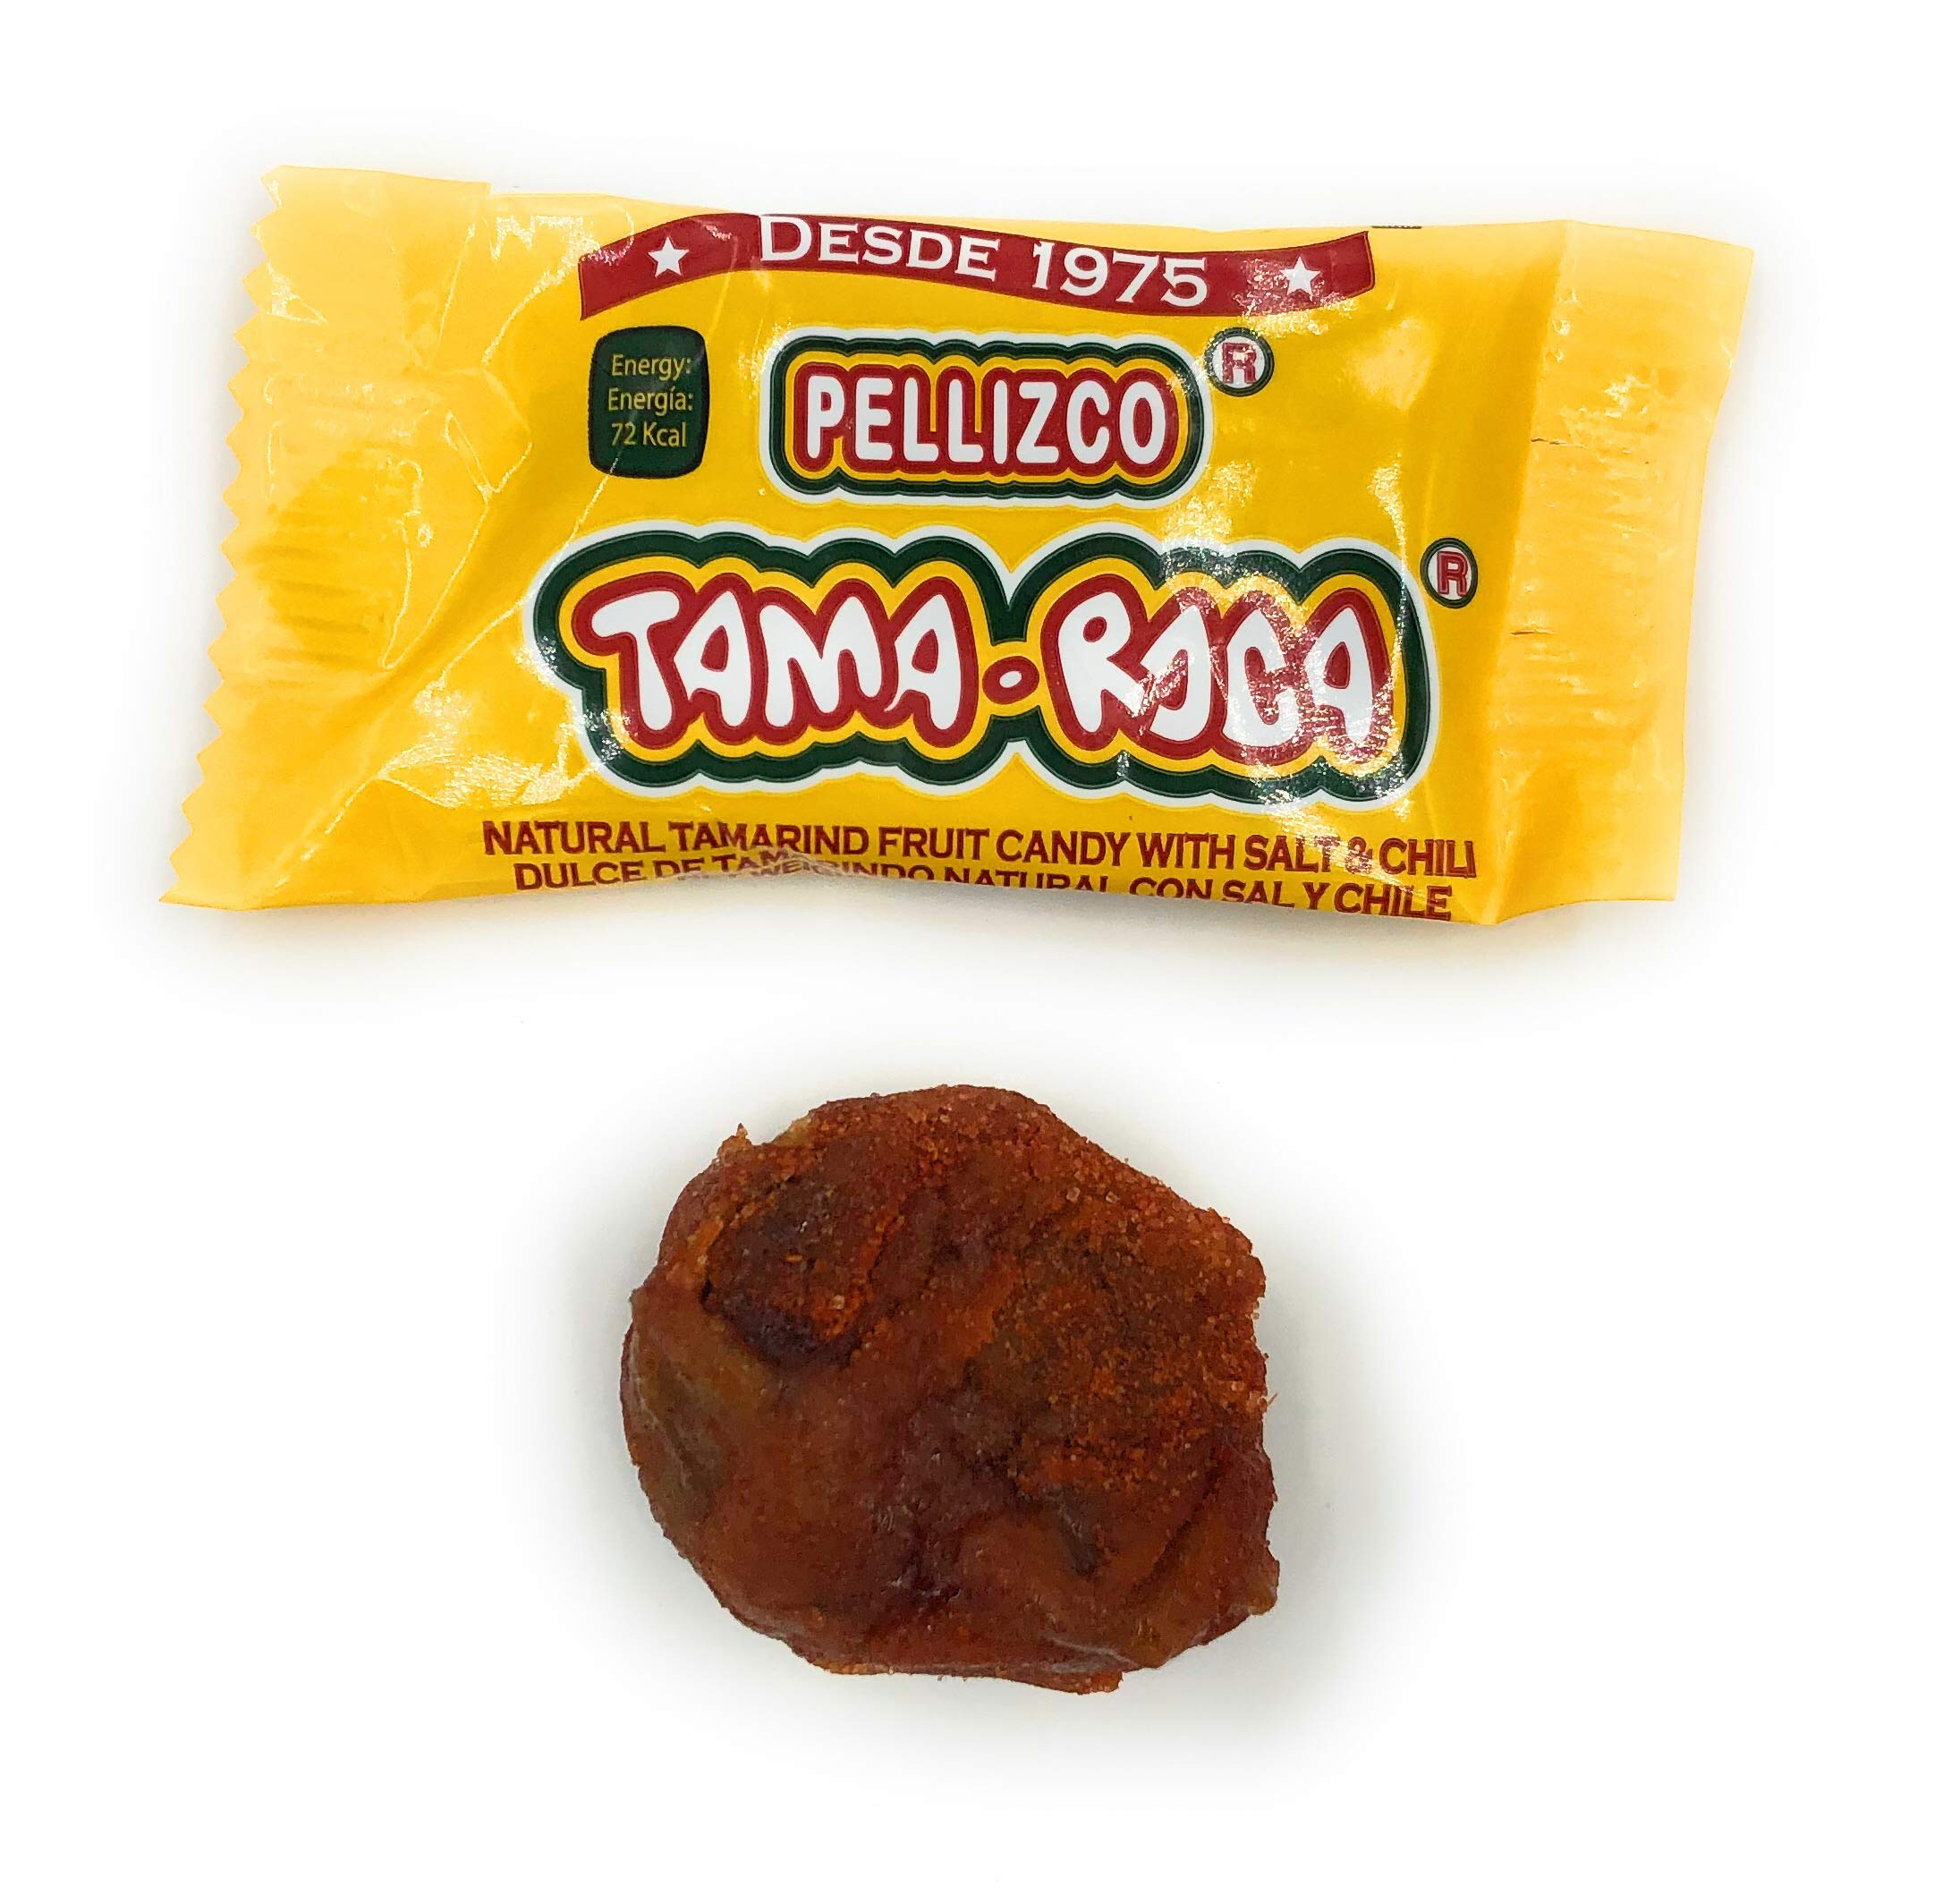 Tama Roca Pellizco Natural Tamarind Candy with Salt and Chili 40 Count (28.2 Ounce Pack)